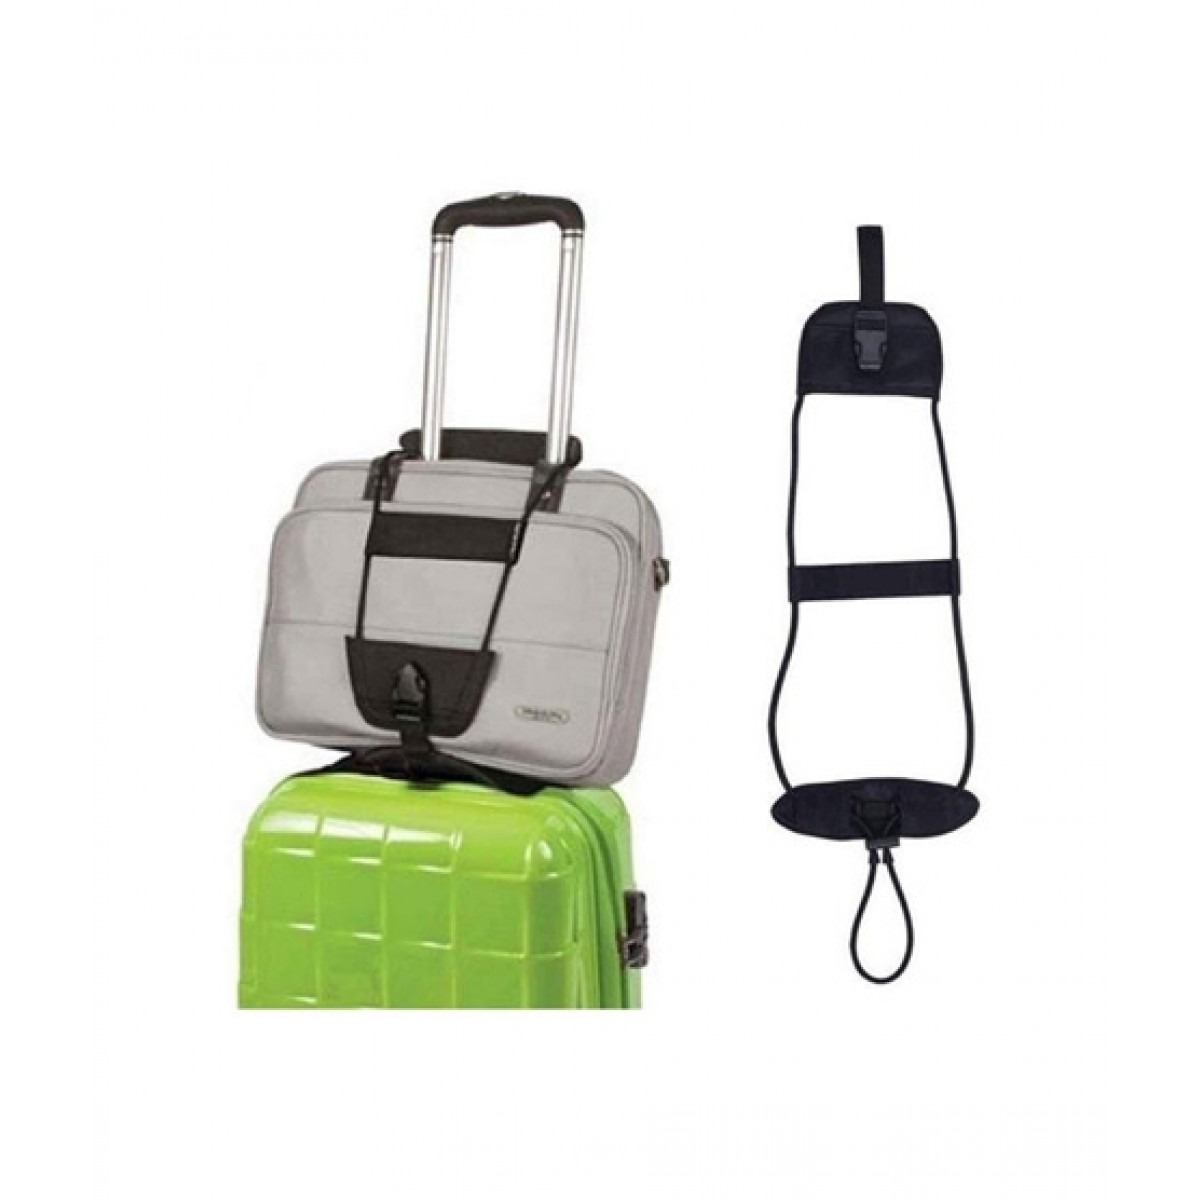 G-Mart Bag Bungee Adjustable Suitcase Carry Strap